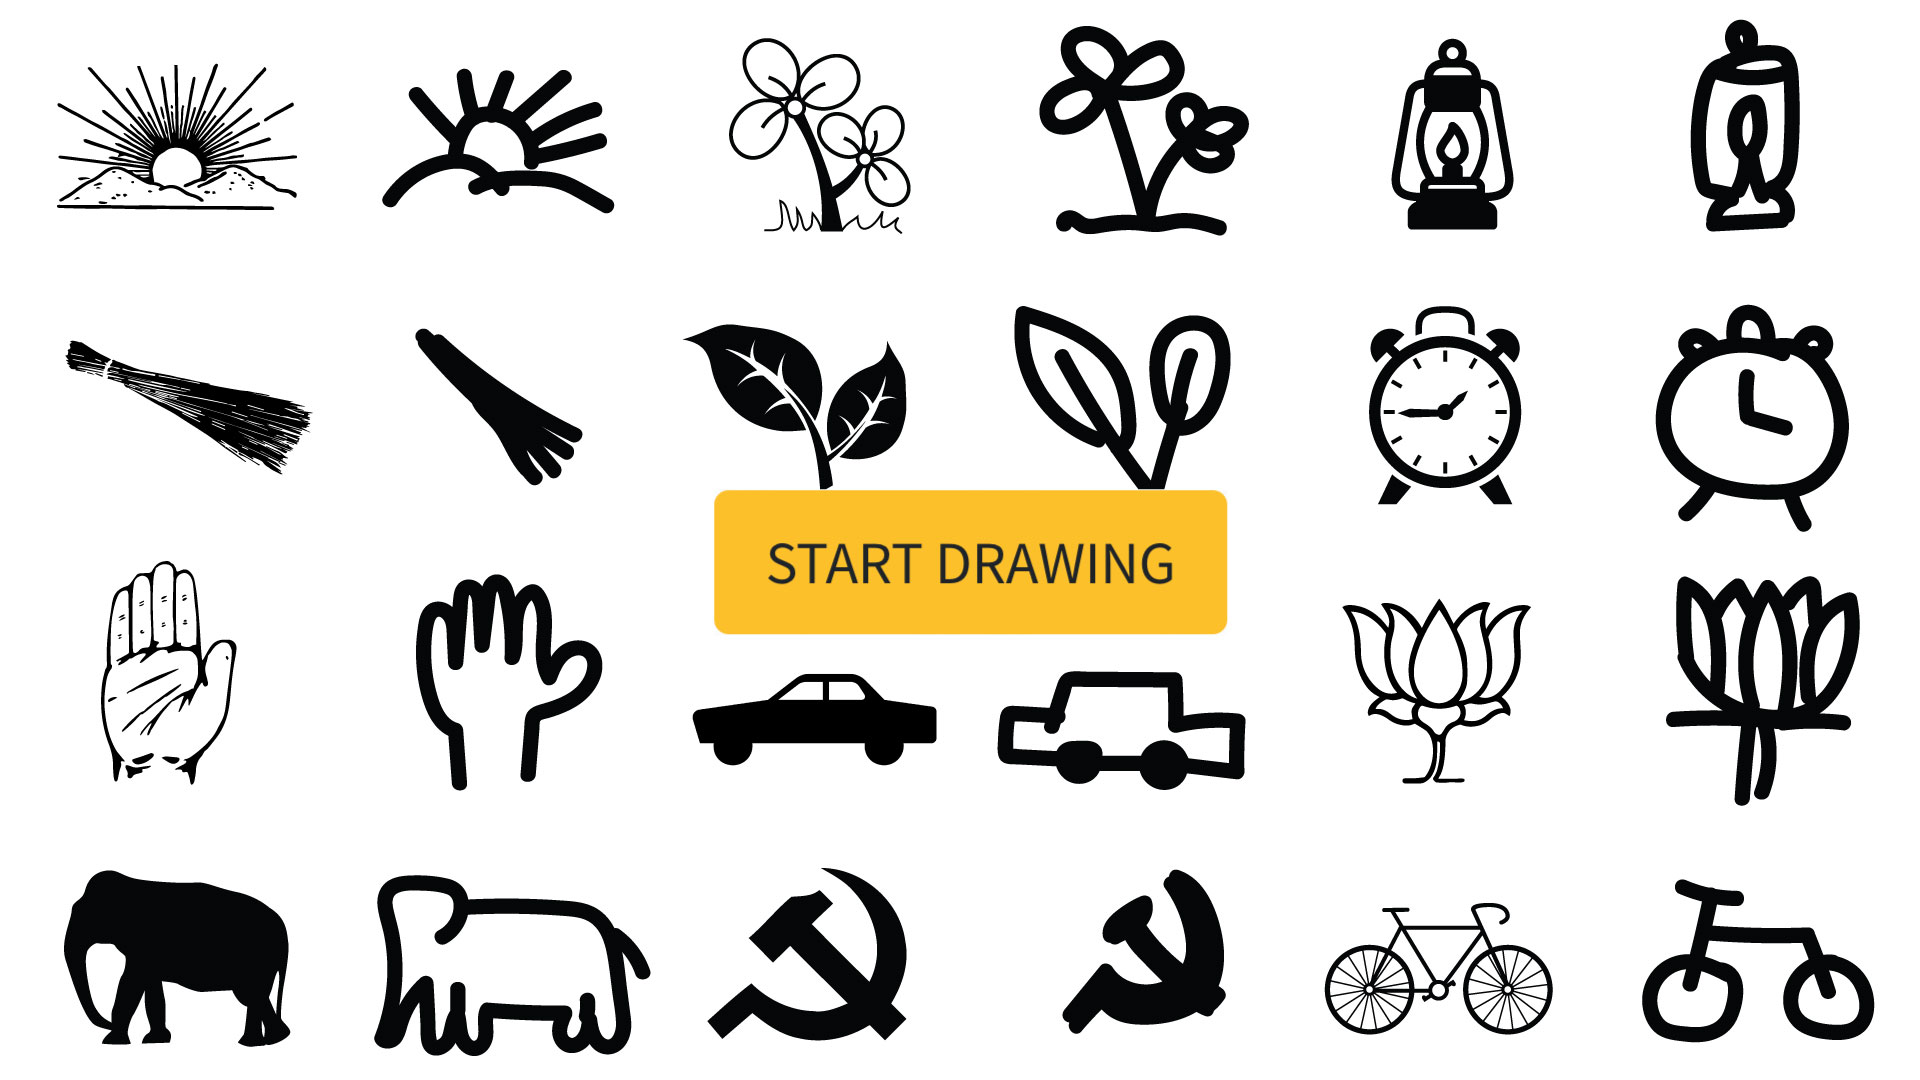 Learn what India's parties' symbols mean by drawing them